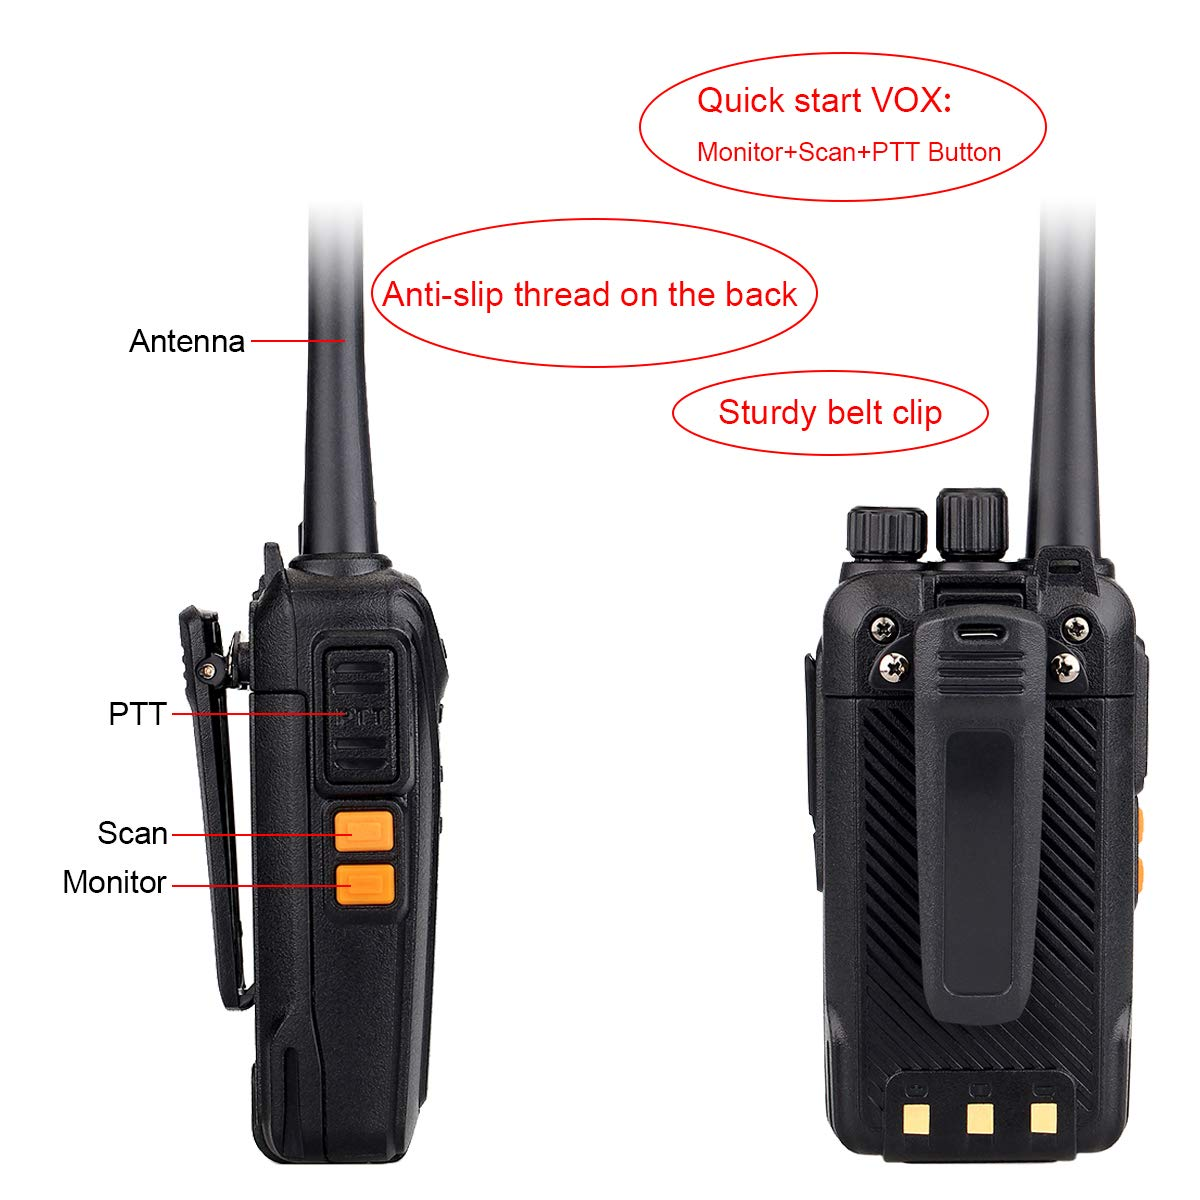 Retevis RT27 Walkie Talkeis Rechargeable UHF Long Range 22 CH FRS Hands Free Security Heavy-Duty 2 Way Radios with Earpiece 2 Pin 5 Pack